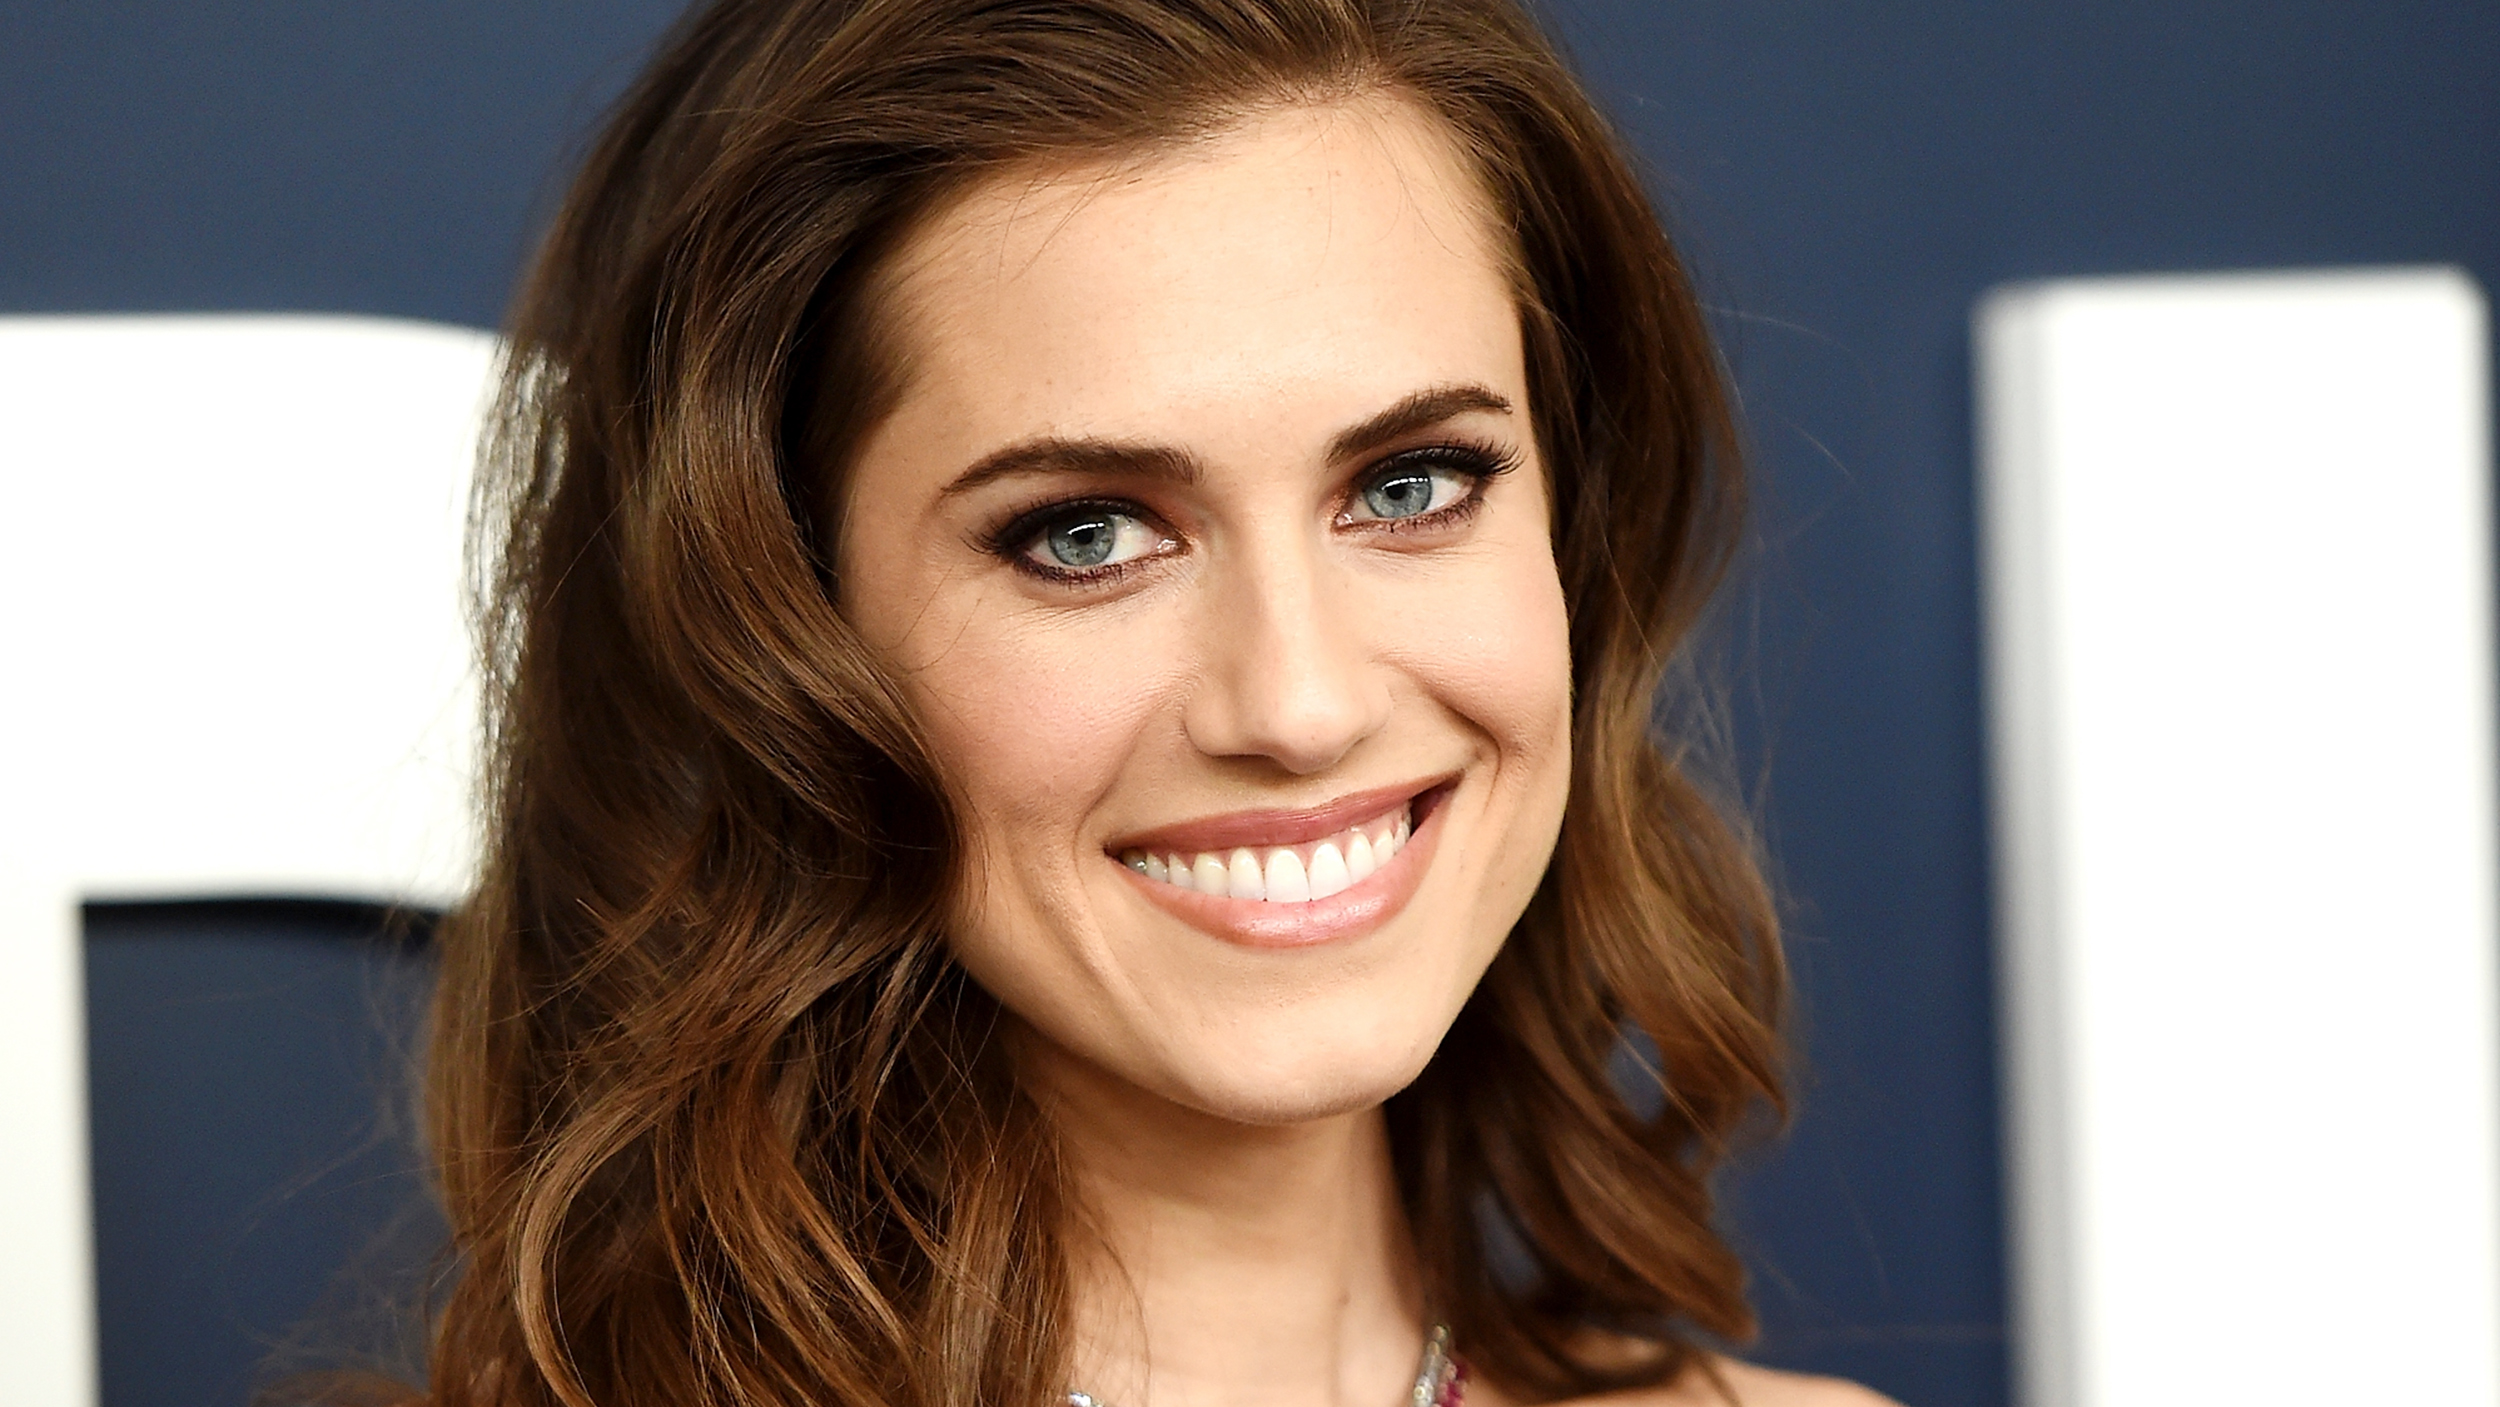 Allison Williams Is Almost Unrecognizable As A Blonde See The Pics